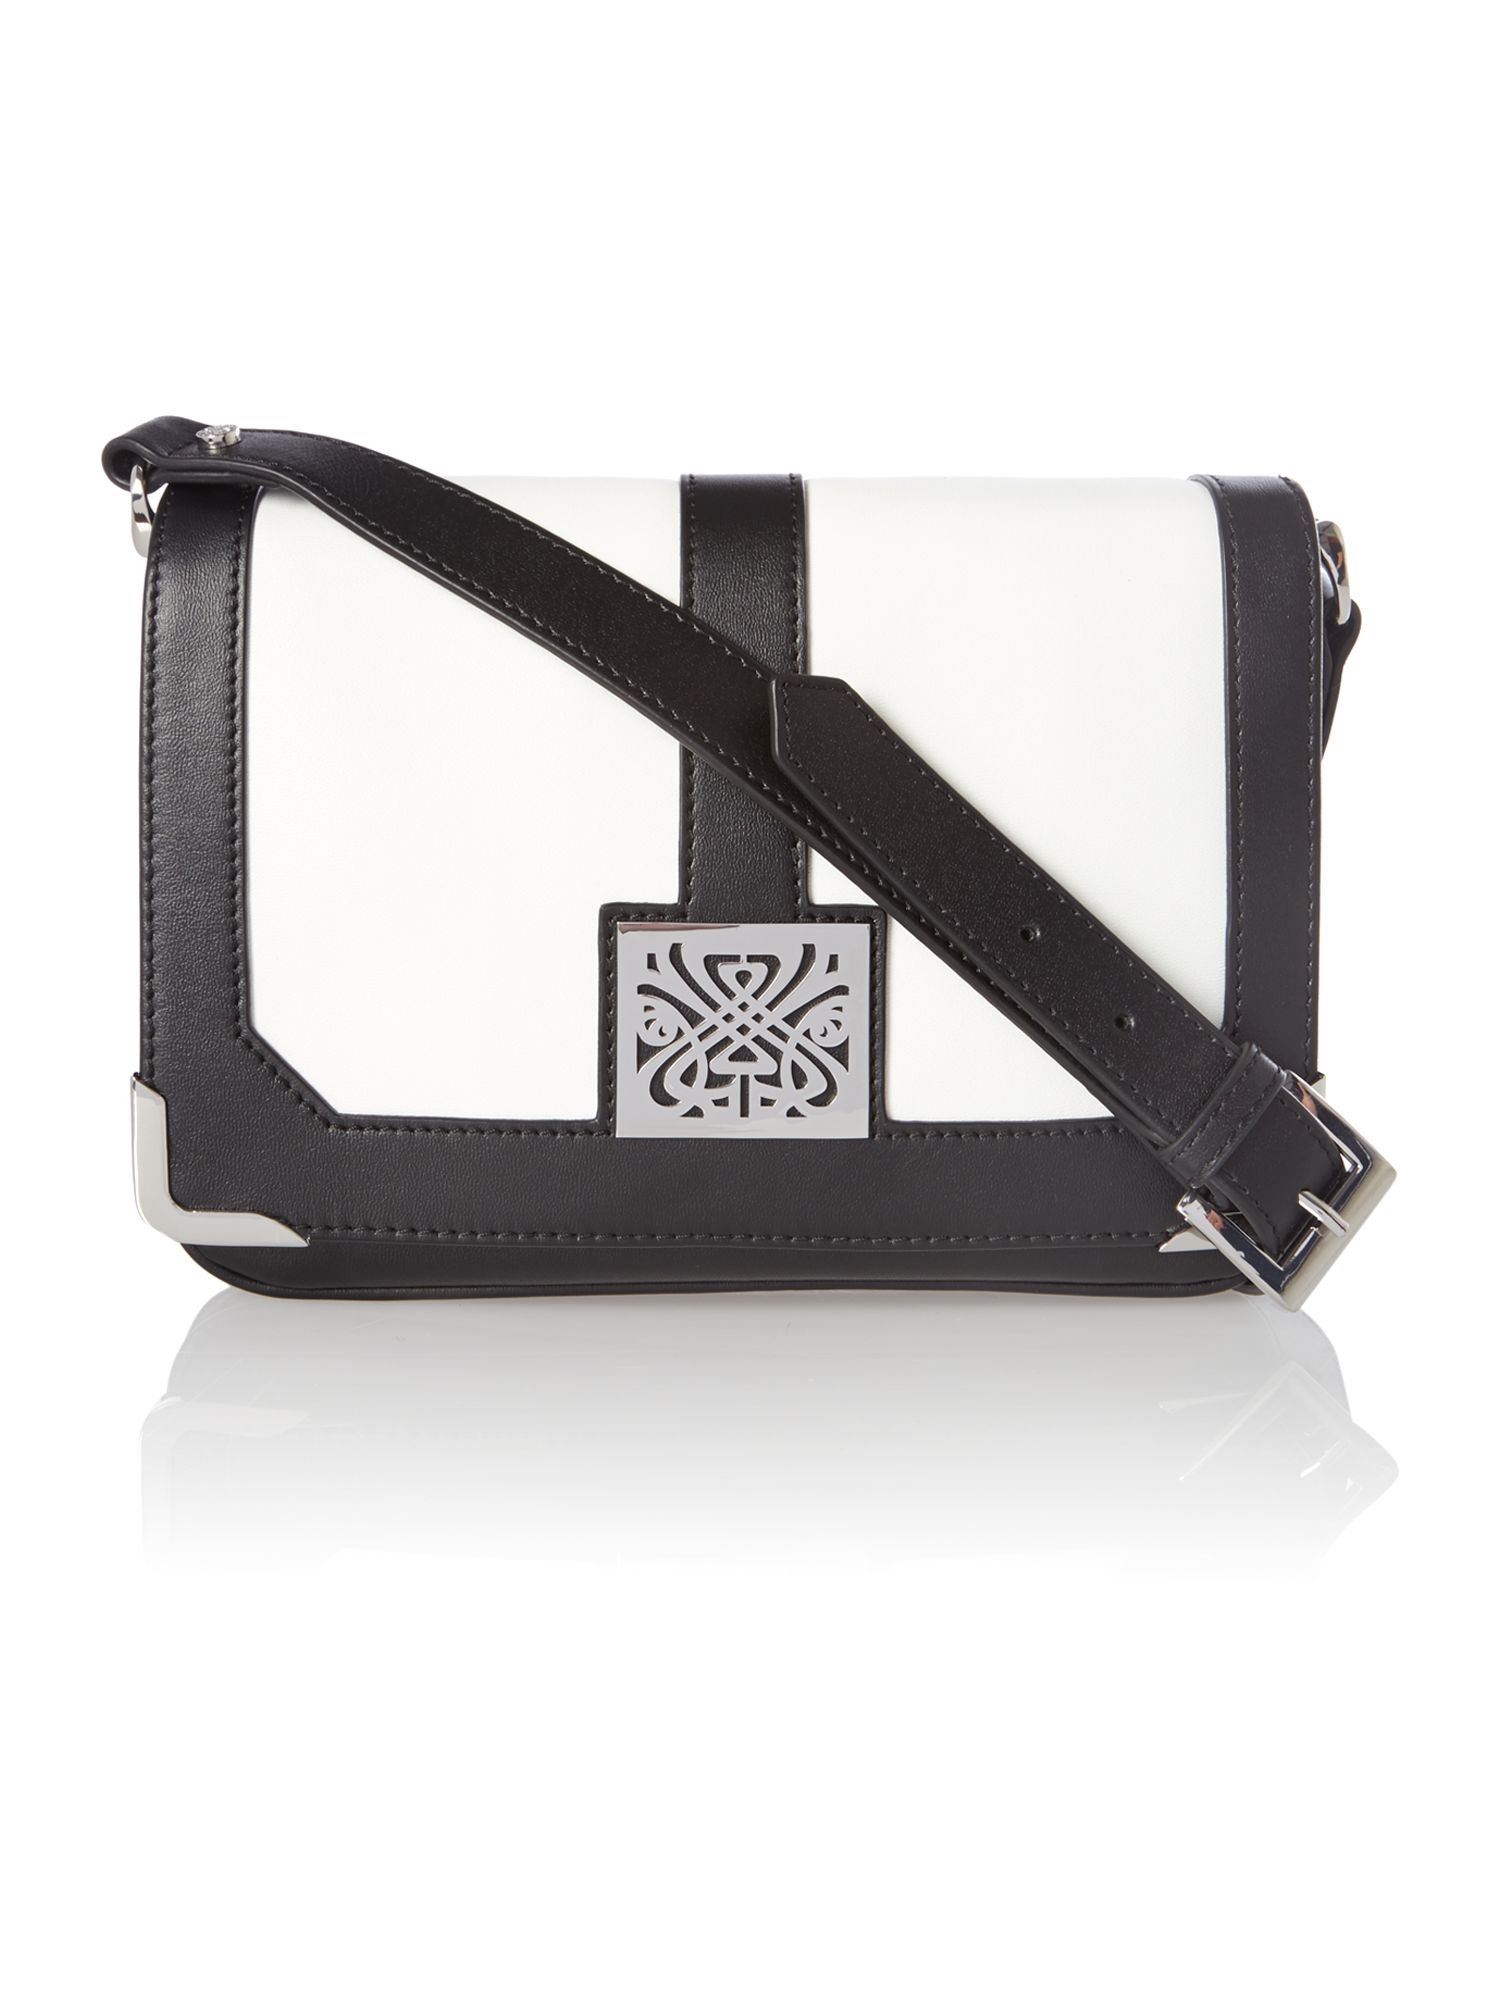 Candice cross body bag